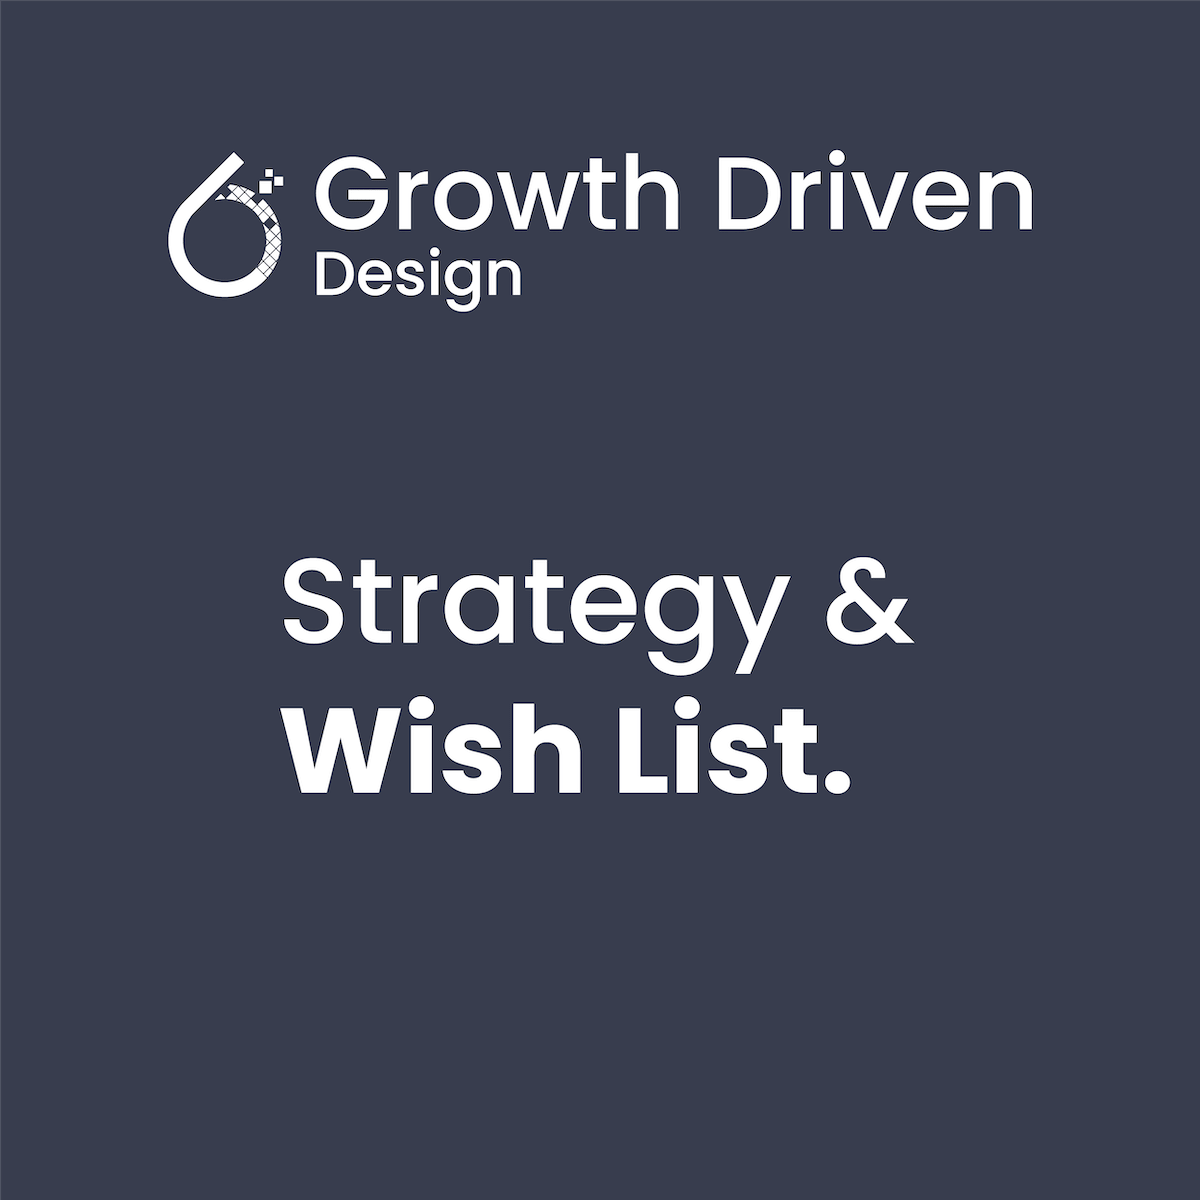 6teen30 Digital - Growth Driven Design - Strategy & Wish List